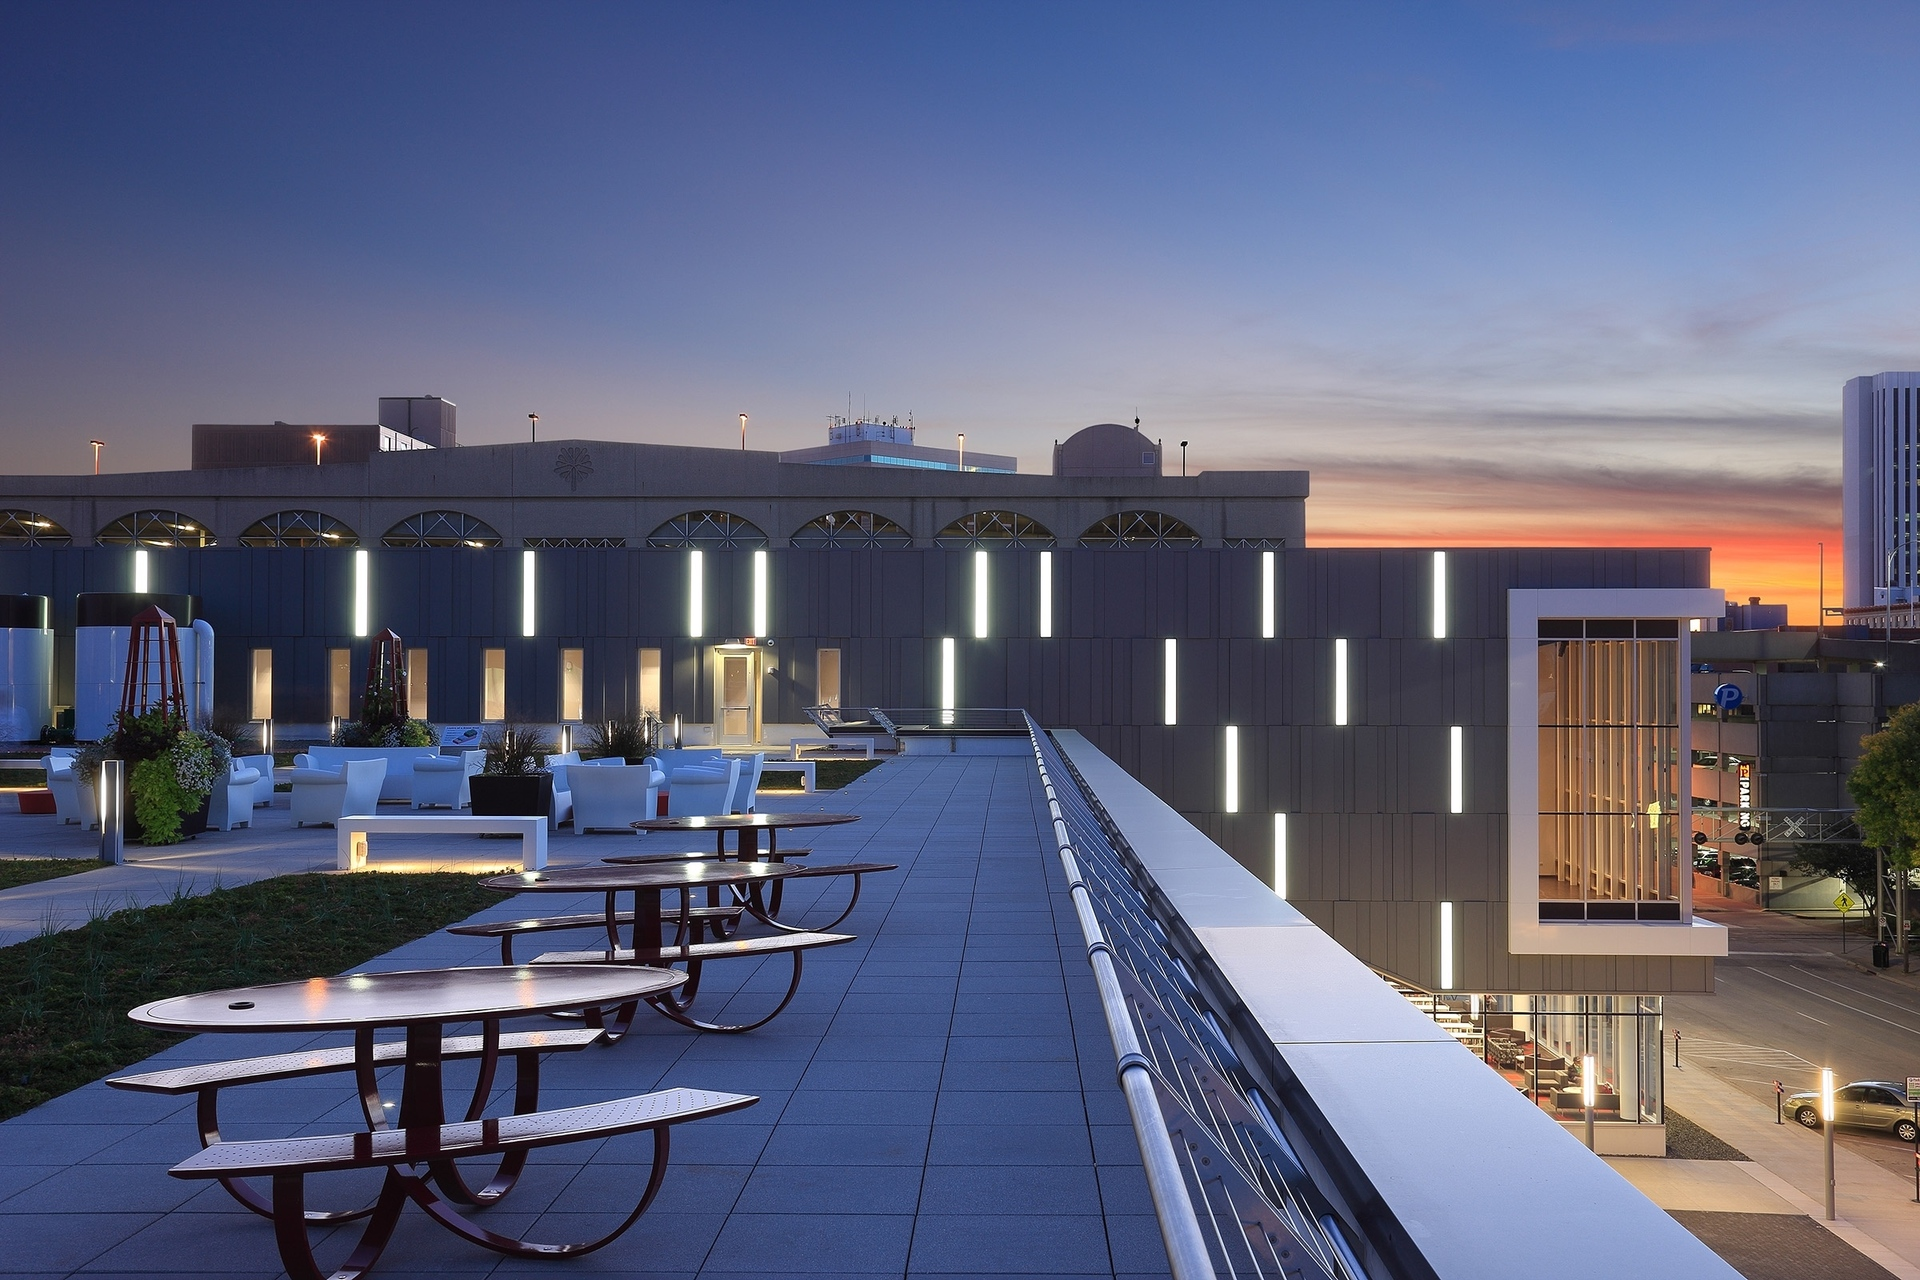 The project goal of creating more green space along with the limited site resulted in the design of a 4,500 sf green roof plaza. The green roof is irrigated with captured rainwater and building condensate which is collected into two 5,000 gallon storage tanks.